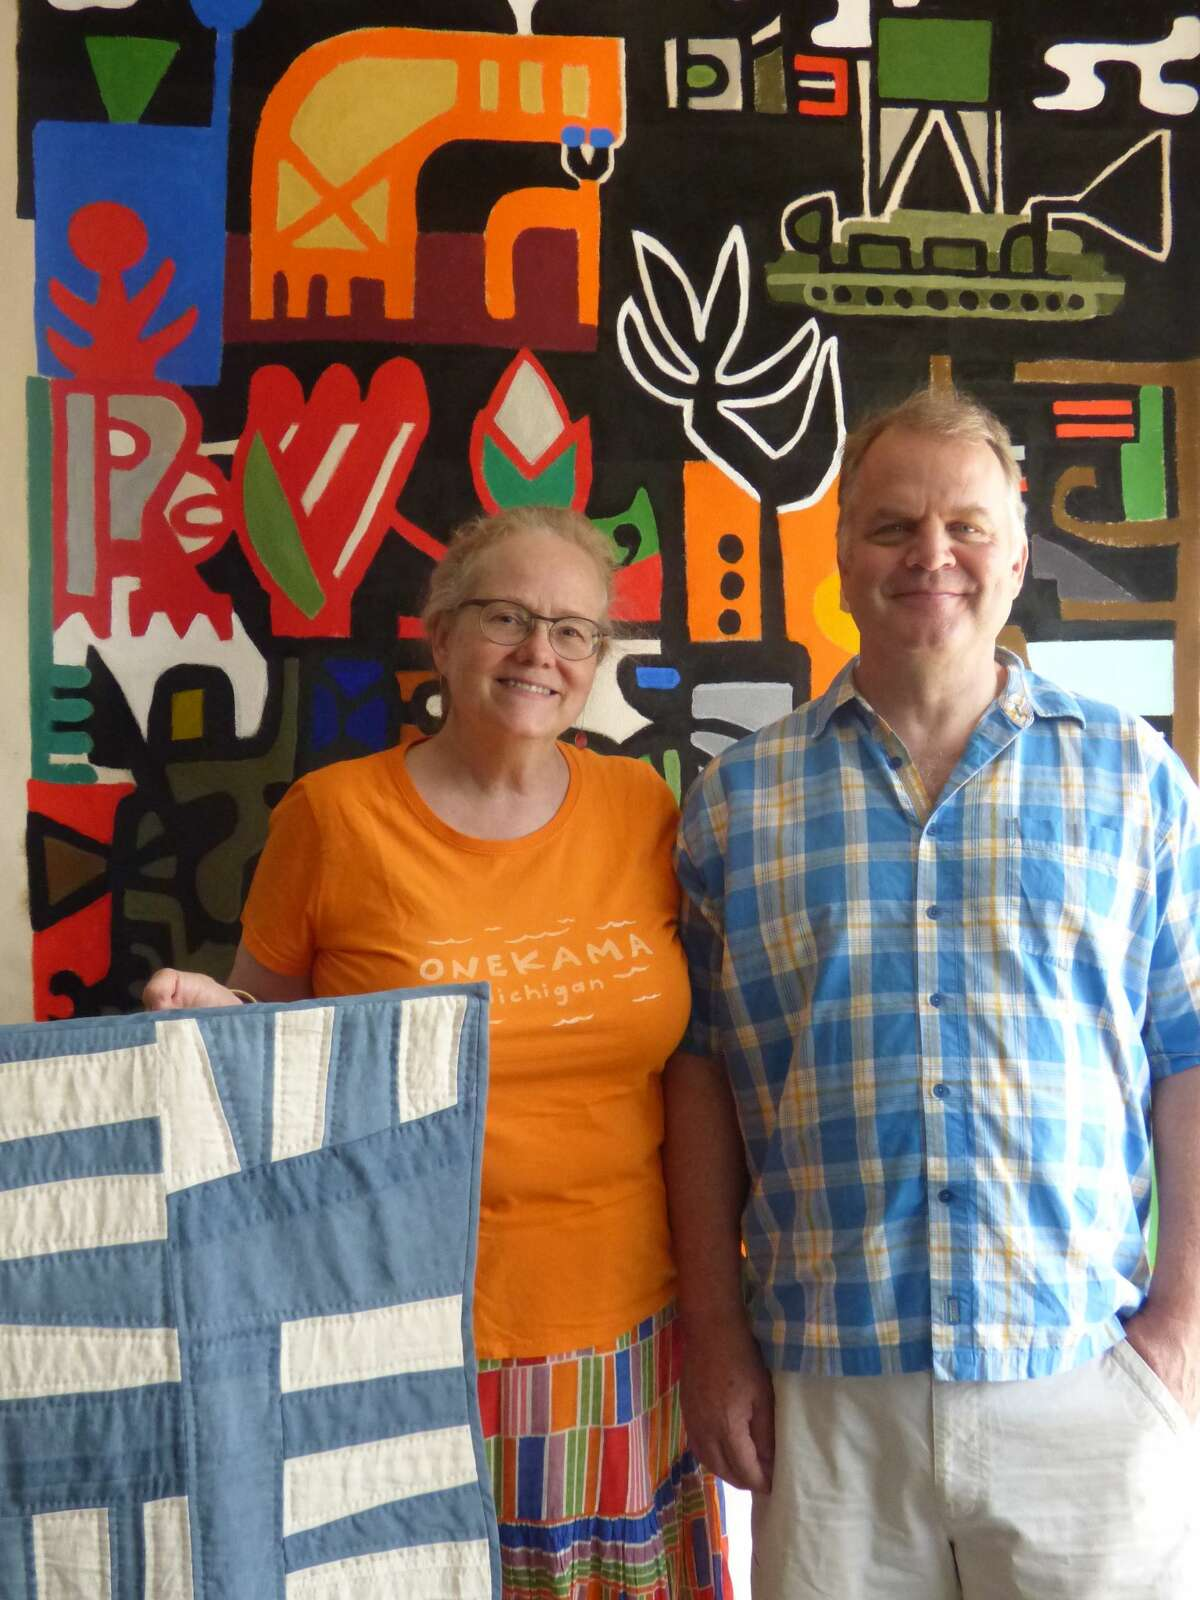 Susan and Jamey Barnard show their work at Handstand Studio in downtown Onekama.